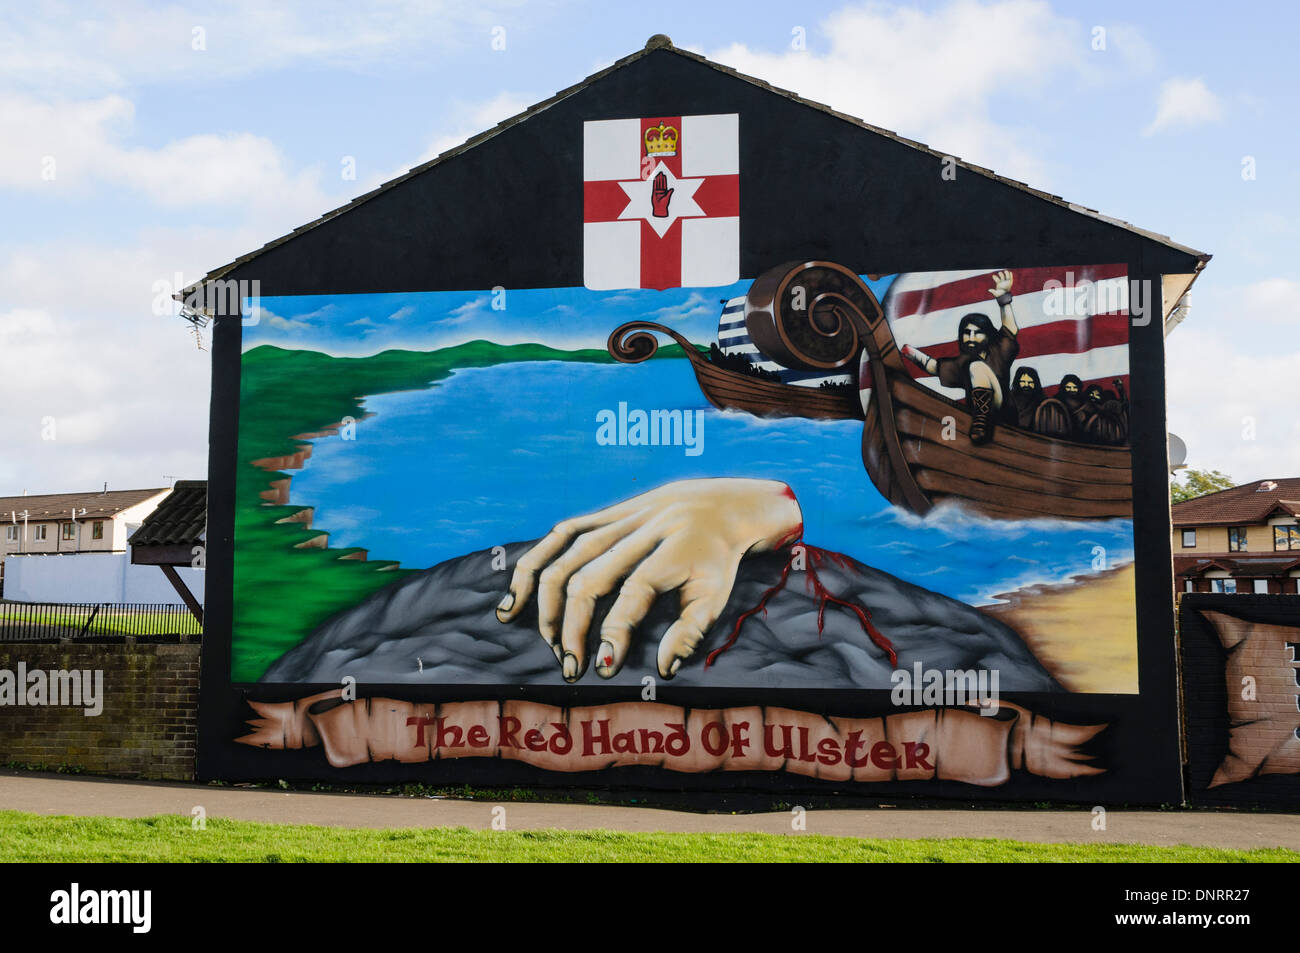 Mural in Belfast commemorating the origin of the Red Hand of Ulster - Stock Image